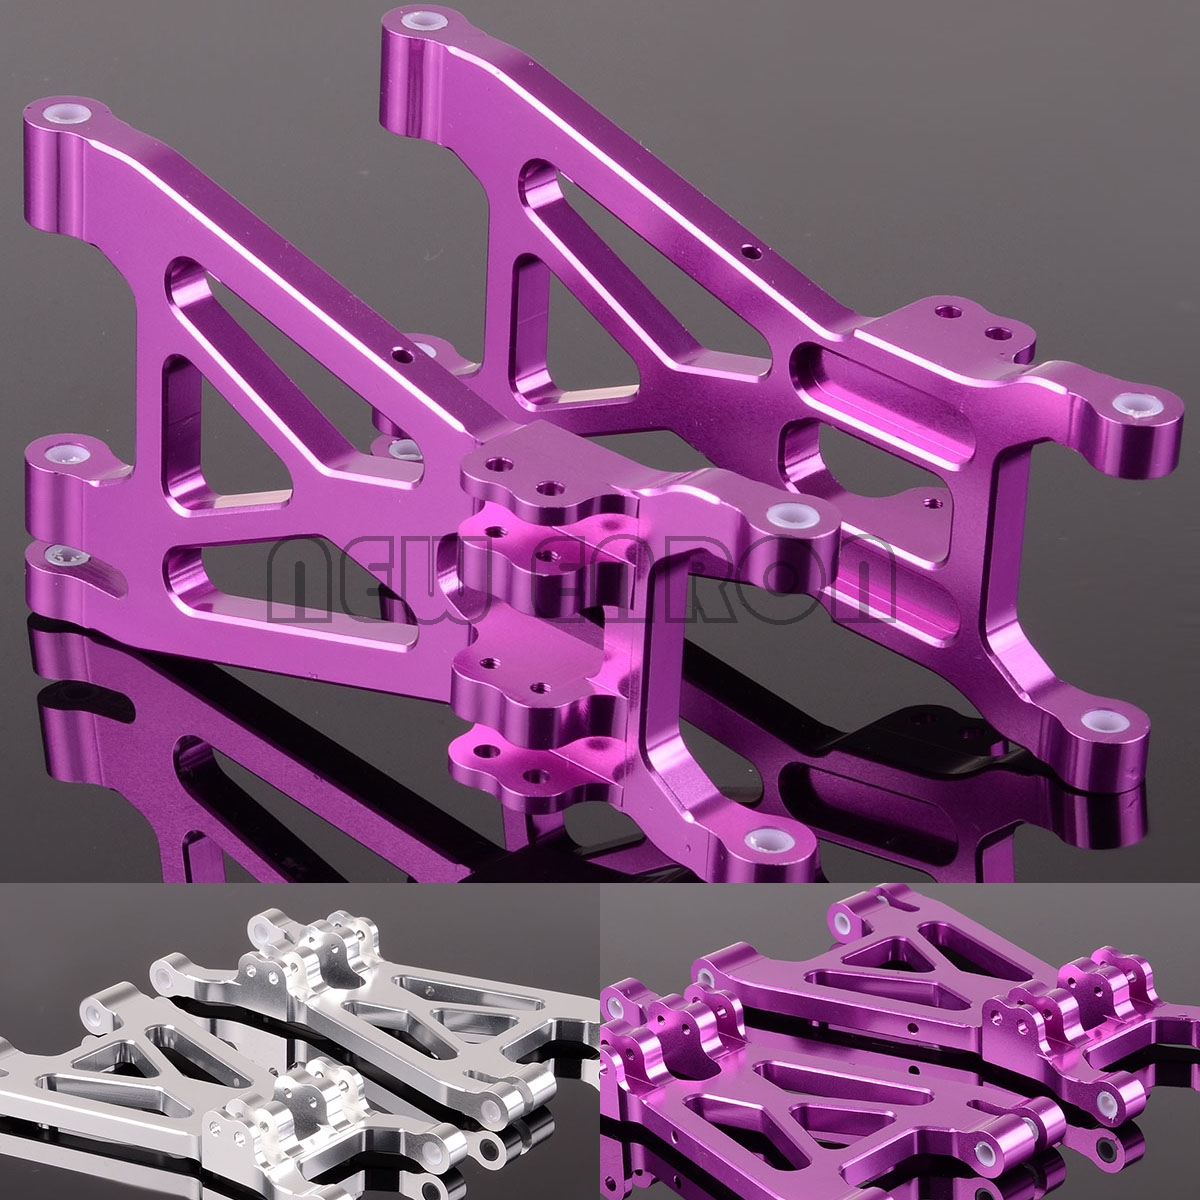 NEW ENRON 2P Aluminum Suspension A-ARMS SAX055 FOR HPI 1/8 1:8 SAVAGE 21 25 SS 4.6 5.9 X XL FLUX